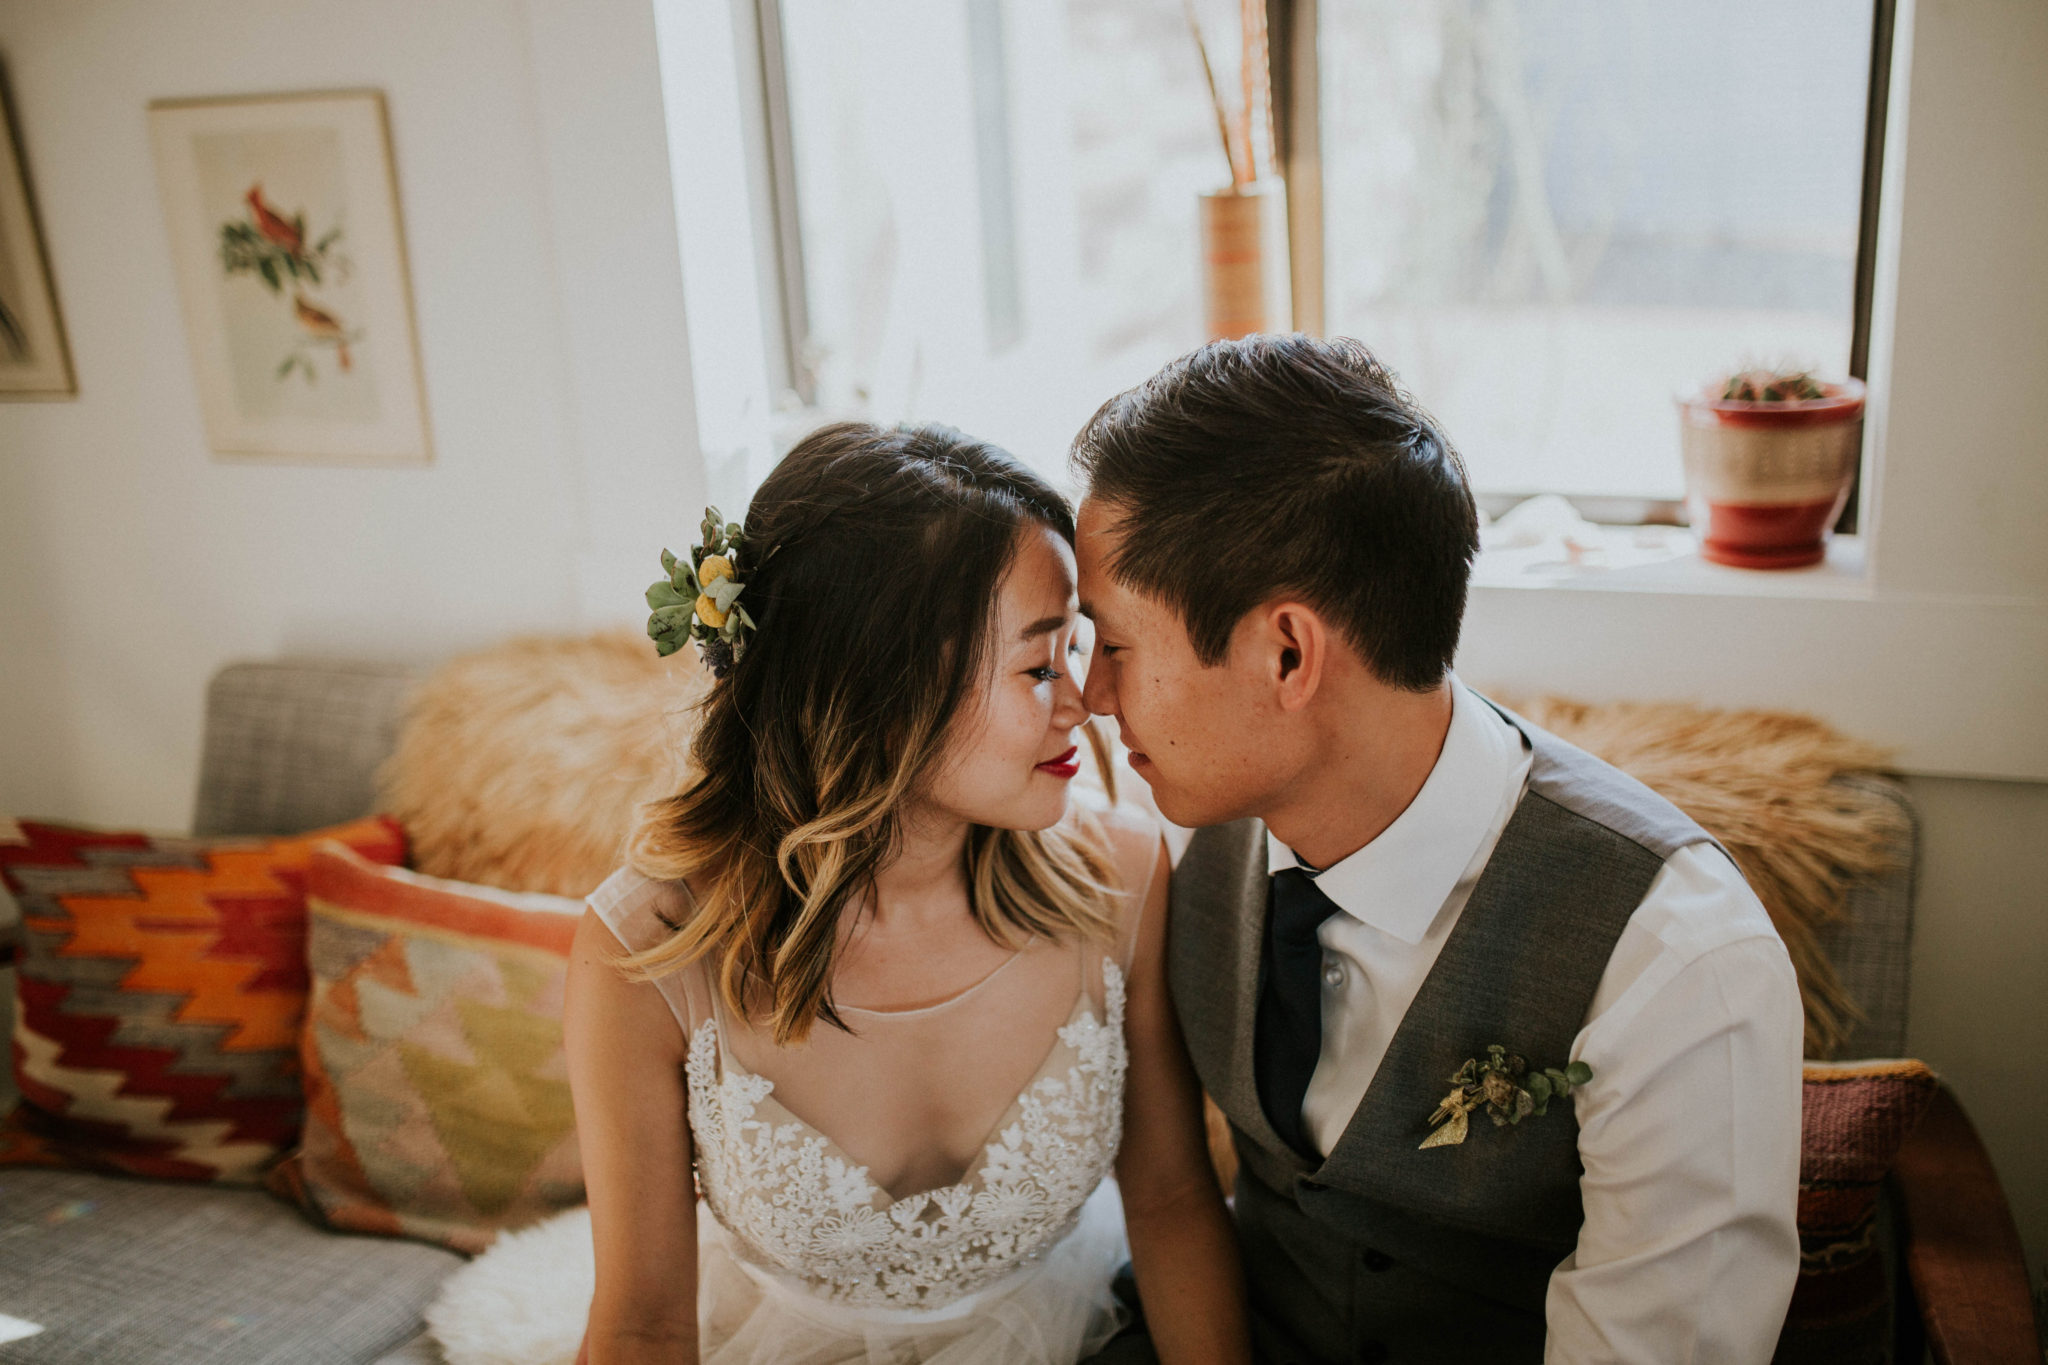 Mandy & Joey Joshua Tree Elopement California Wedding Photographer-11